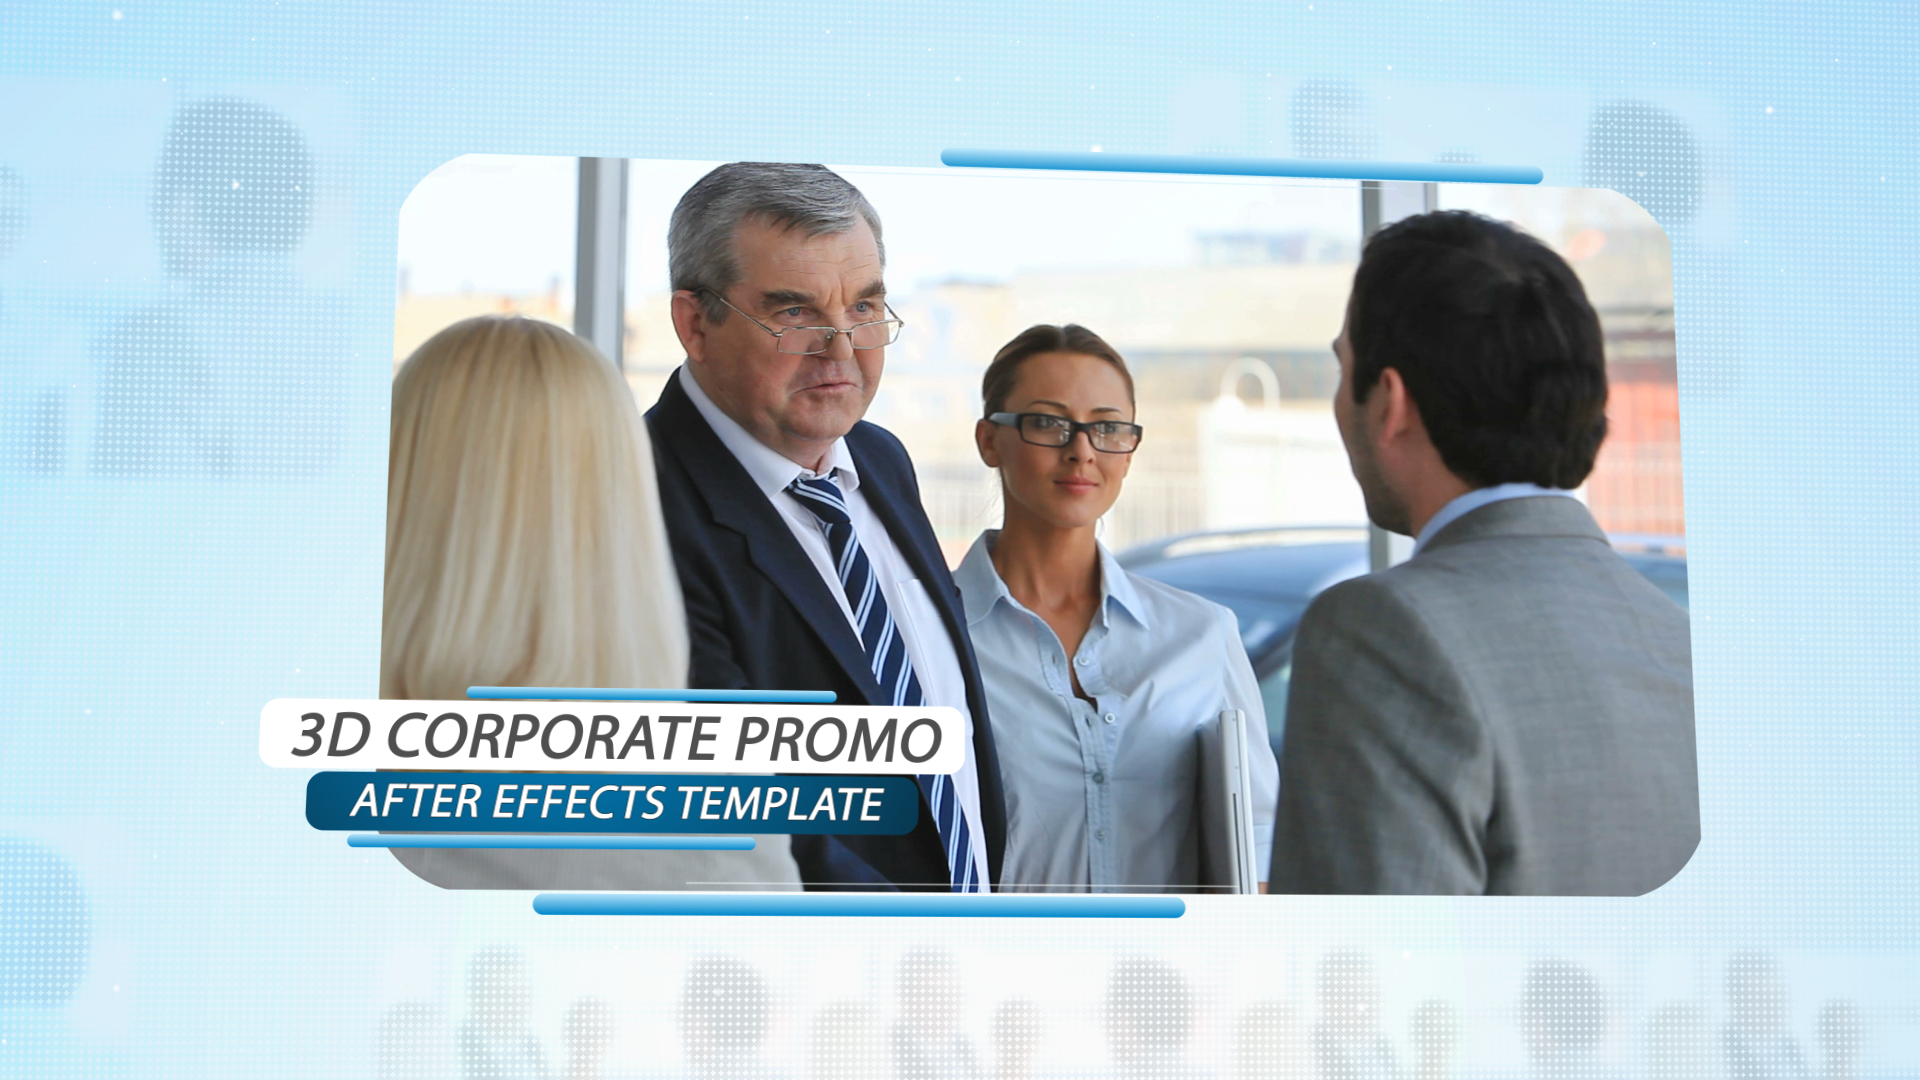 3d corporate promo for Habitacion 3d after effects